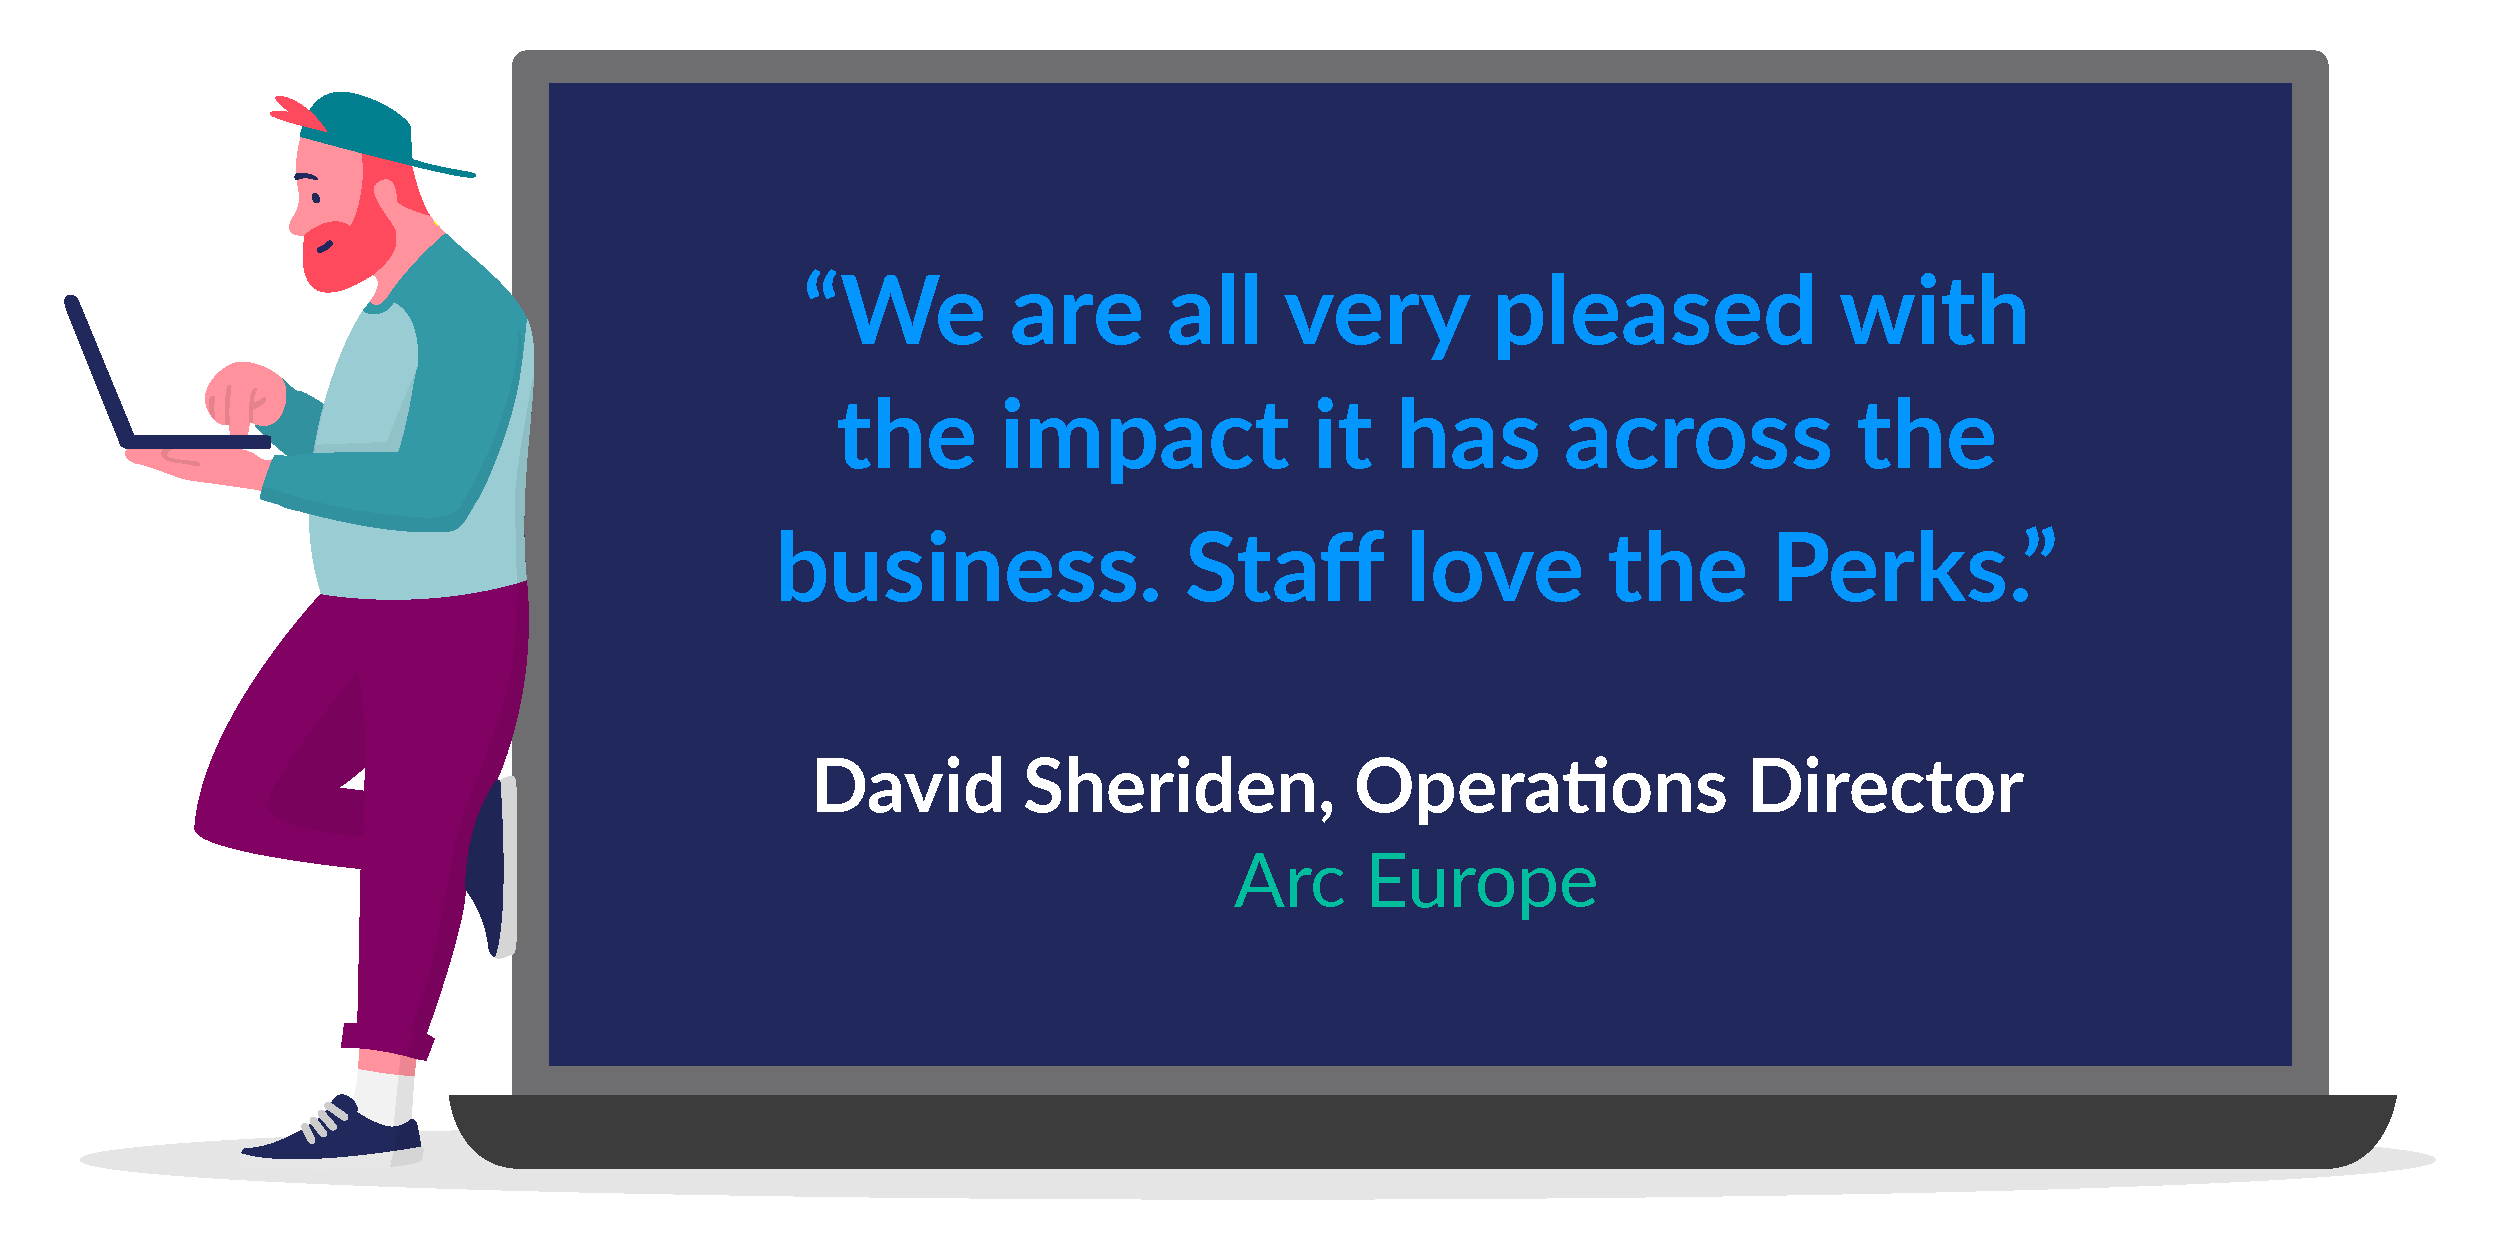 arceurope quote